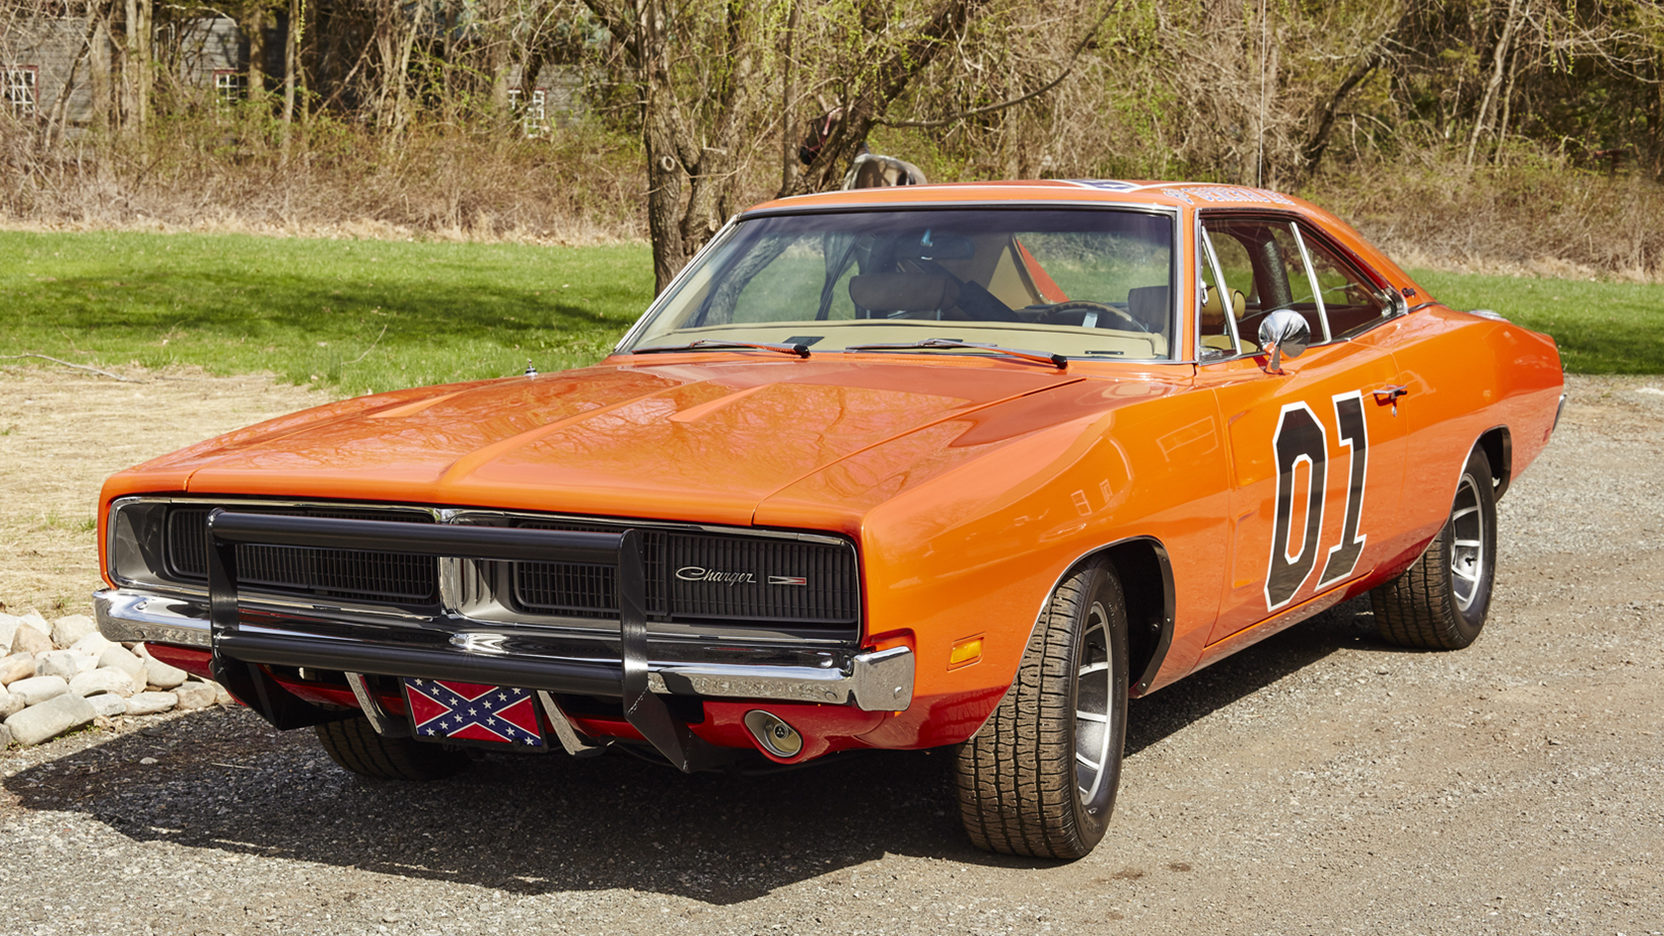 Dukes of Hazzard Car: General Lee (Facts & Figures)